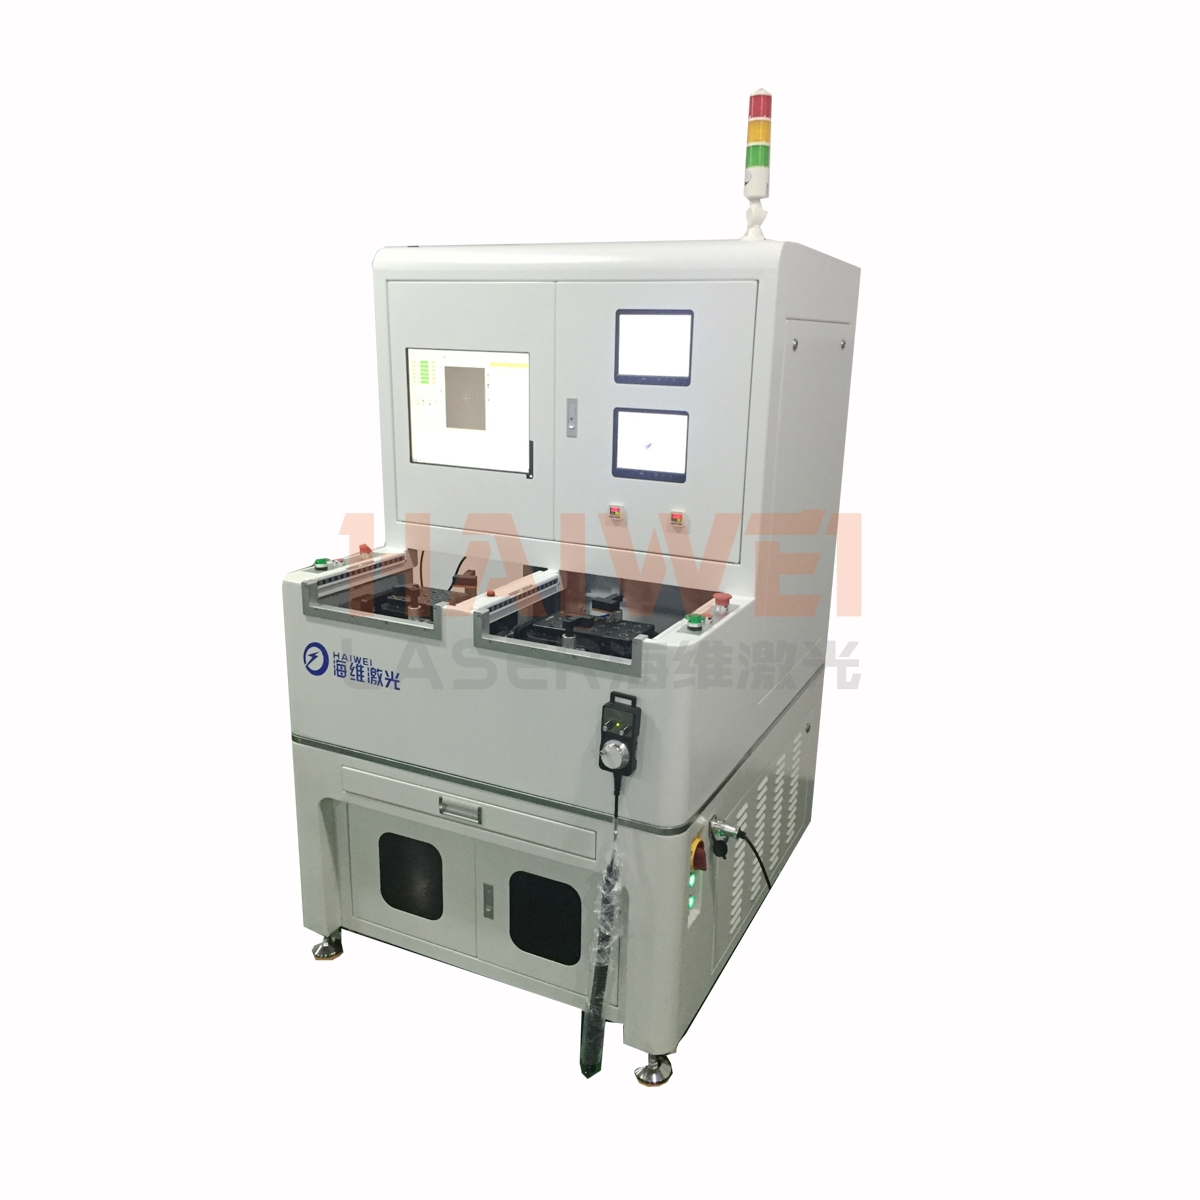 Automated customized laser welding system